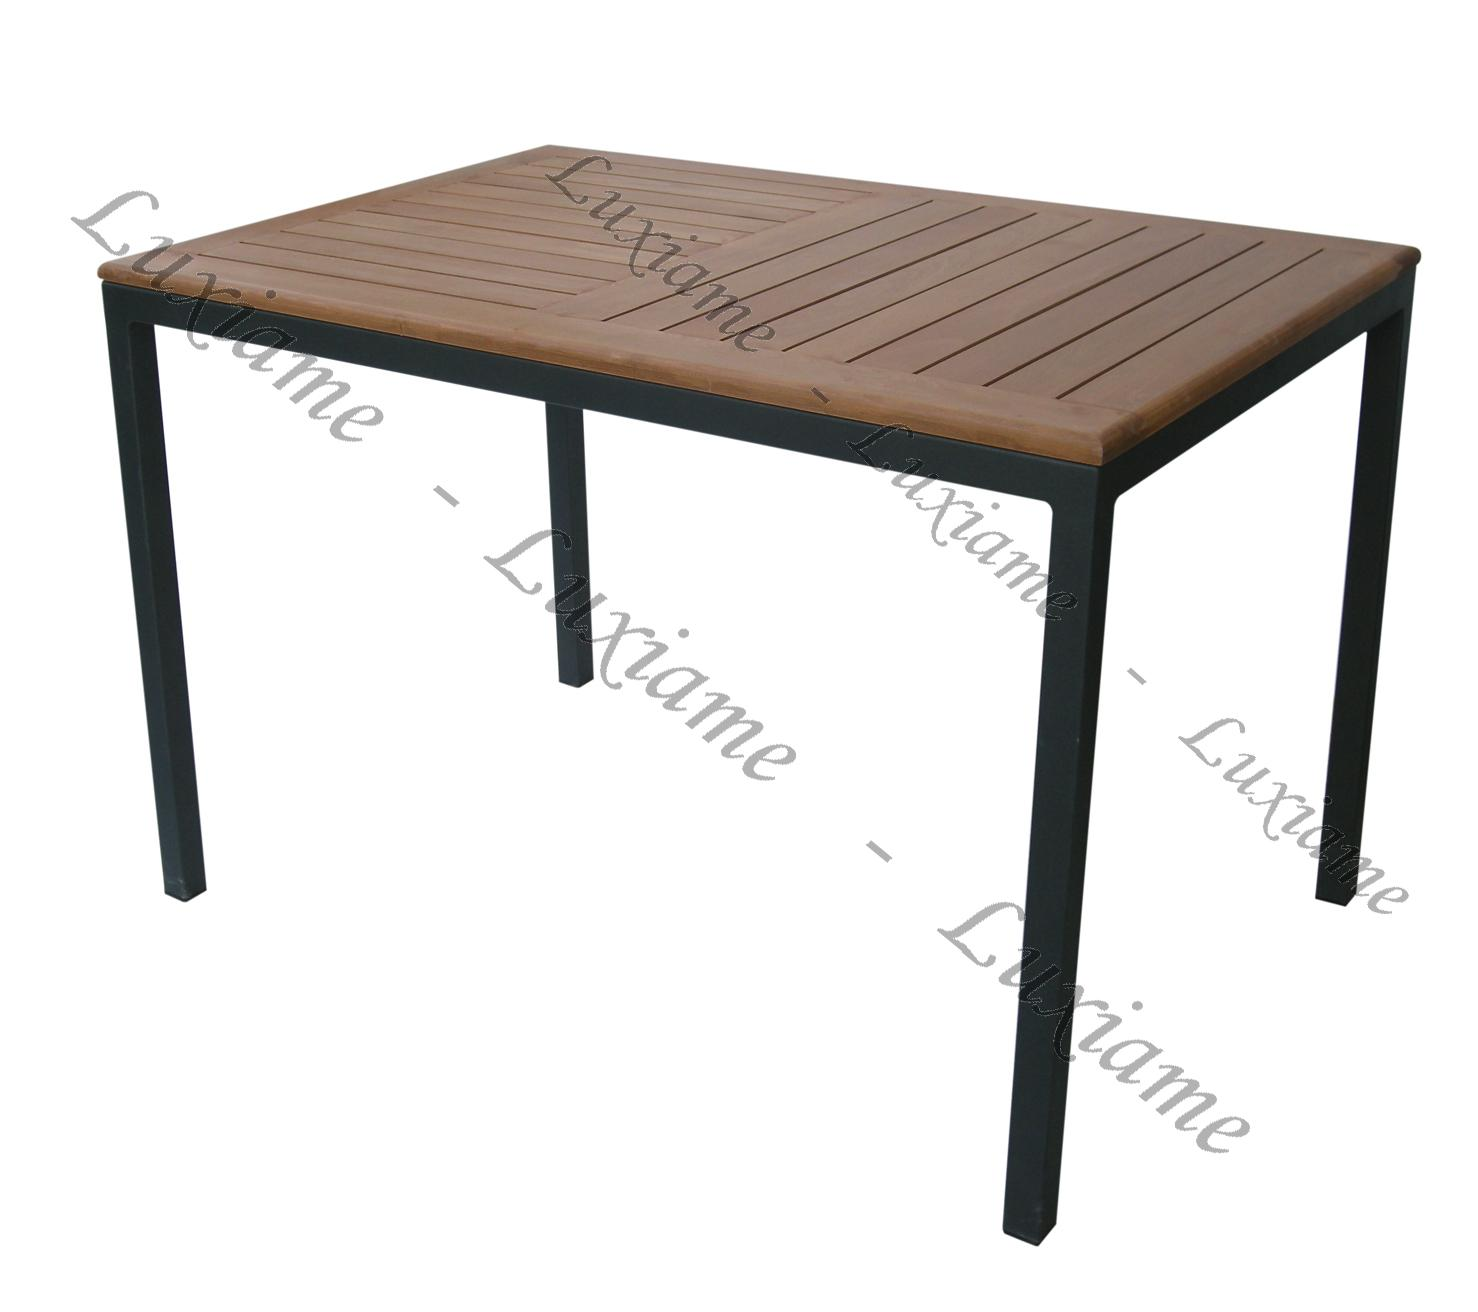 Emejing table plastique jardin tunisie photos awesome for Vente table jardin